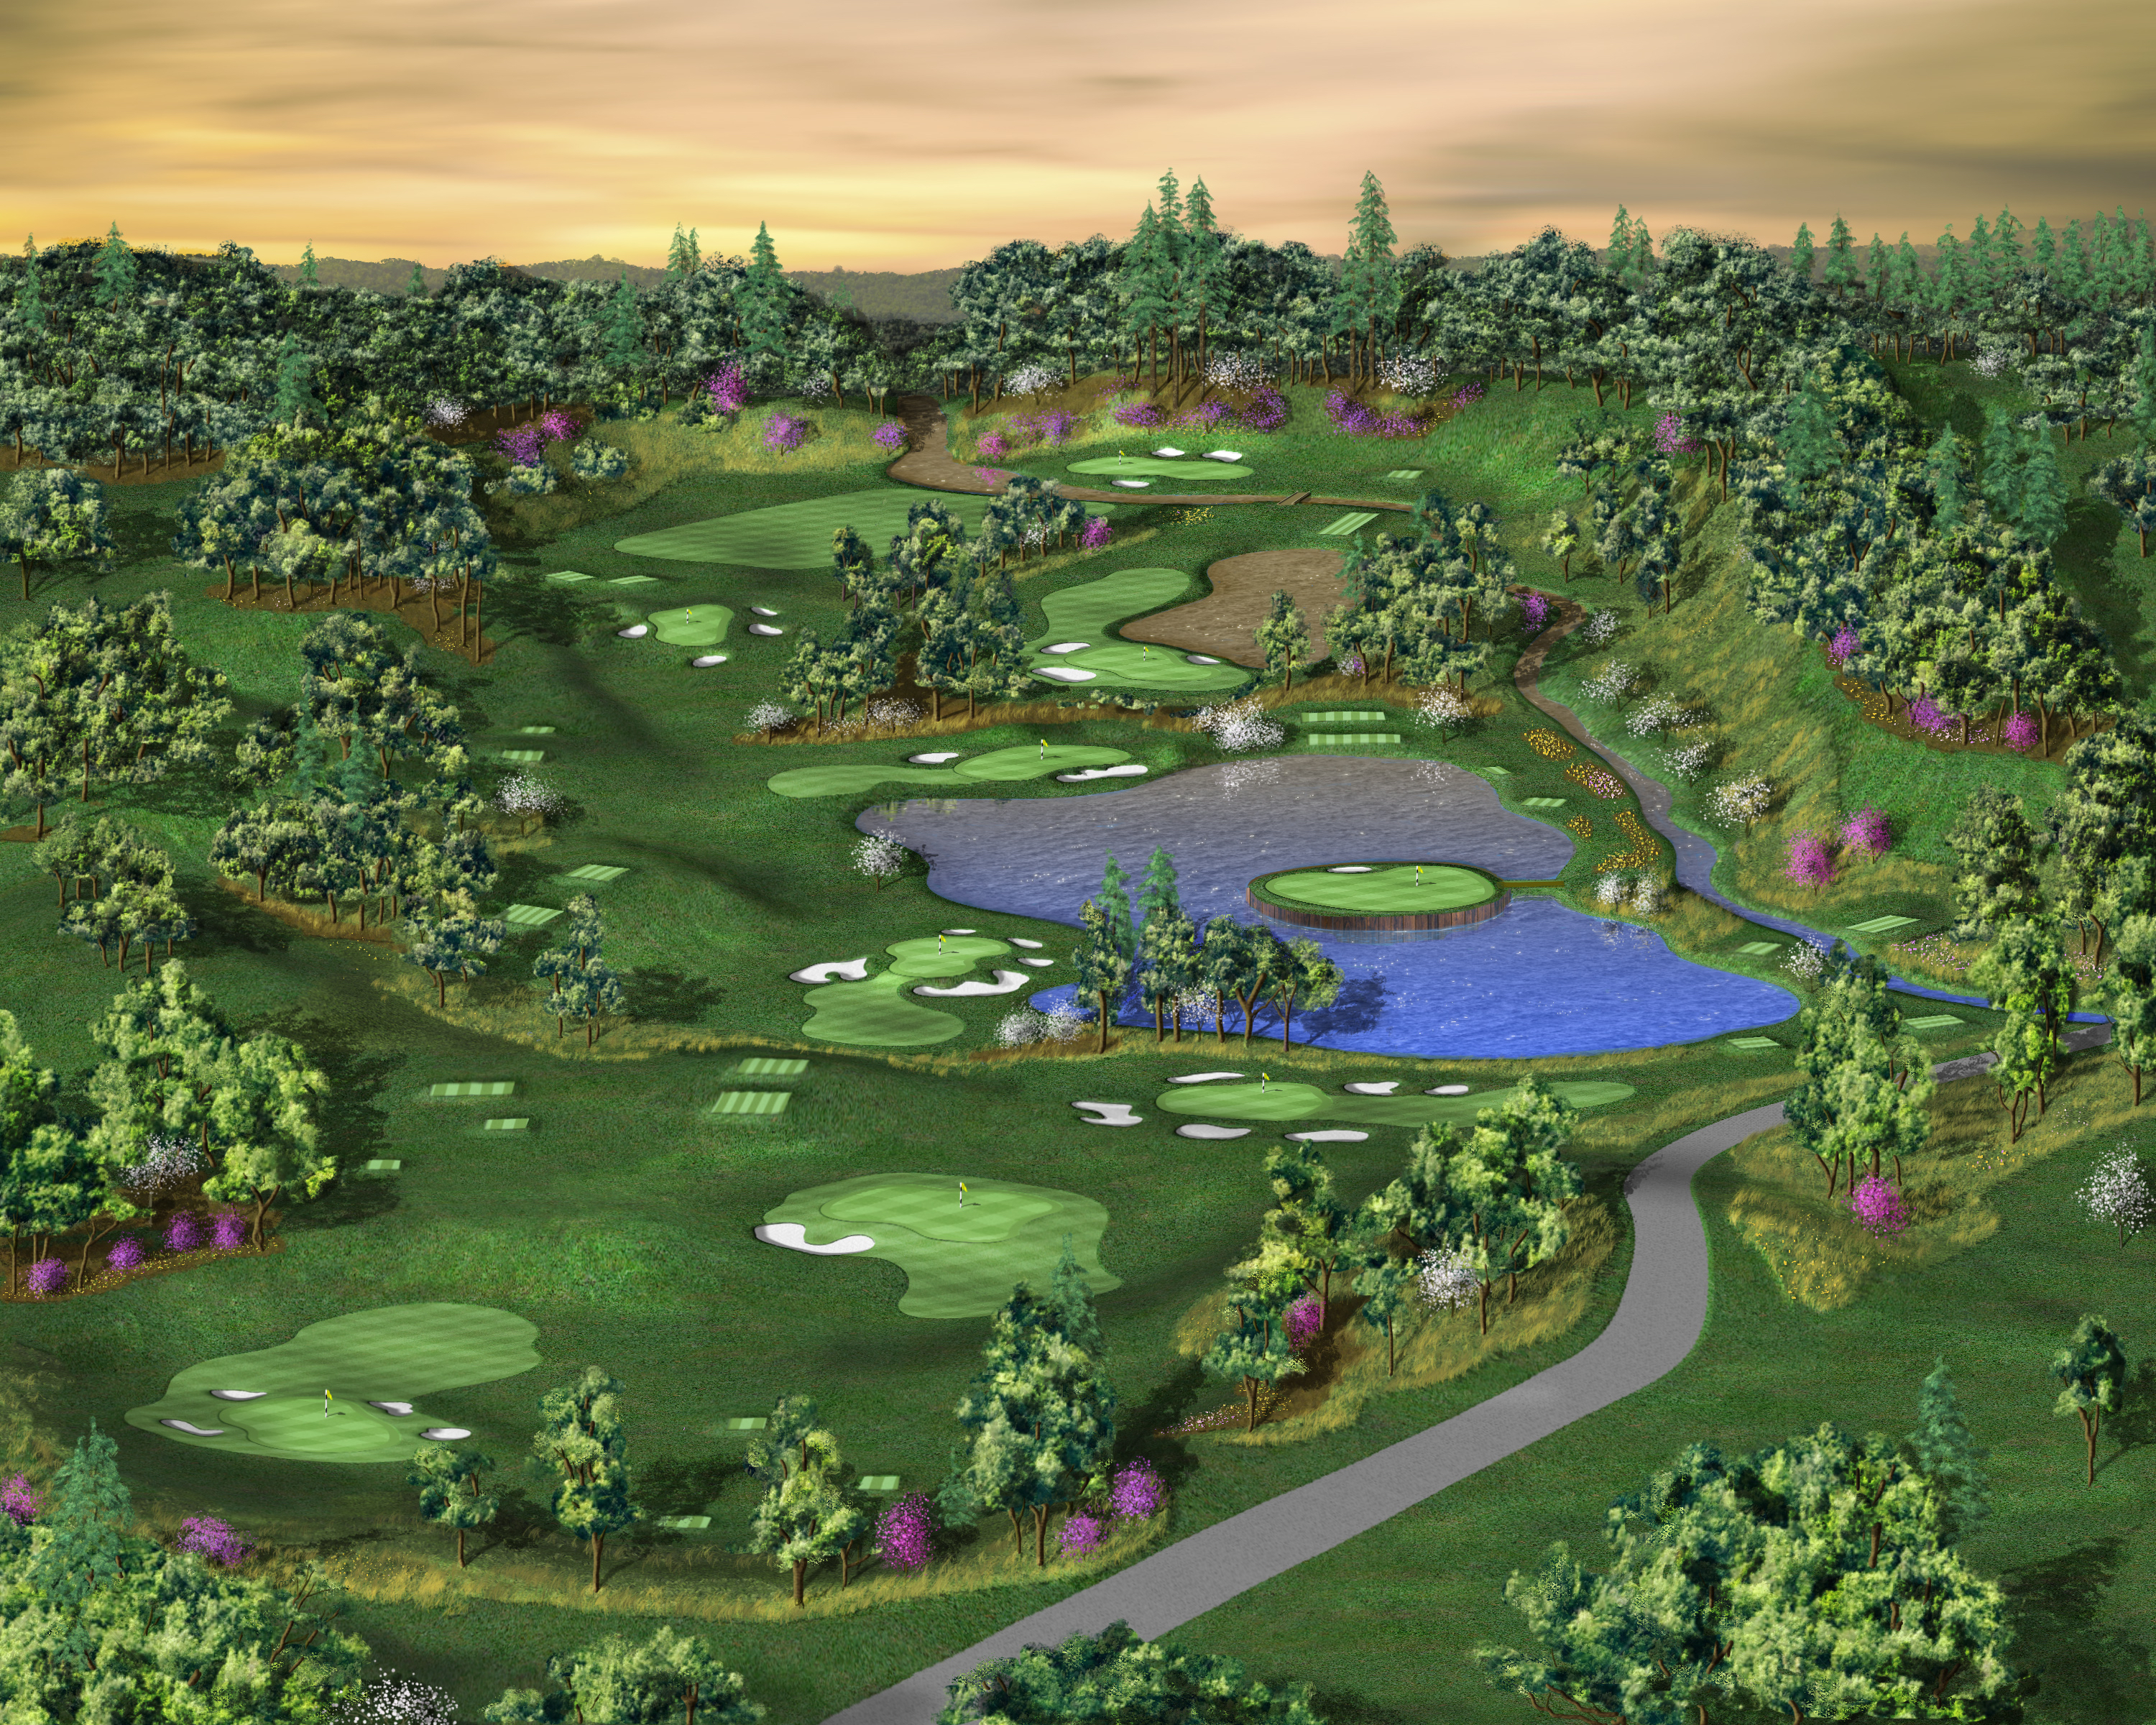 New course features synthetic turf tees and greens - The